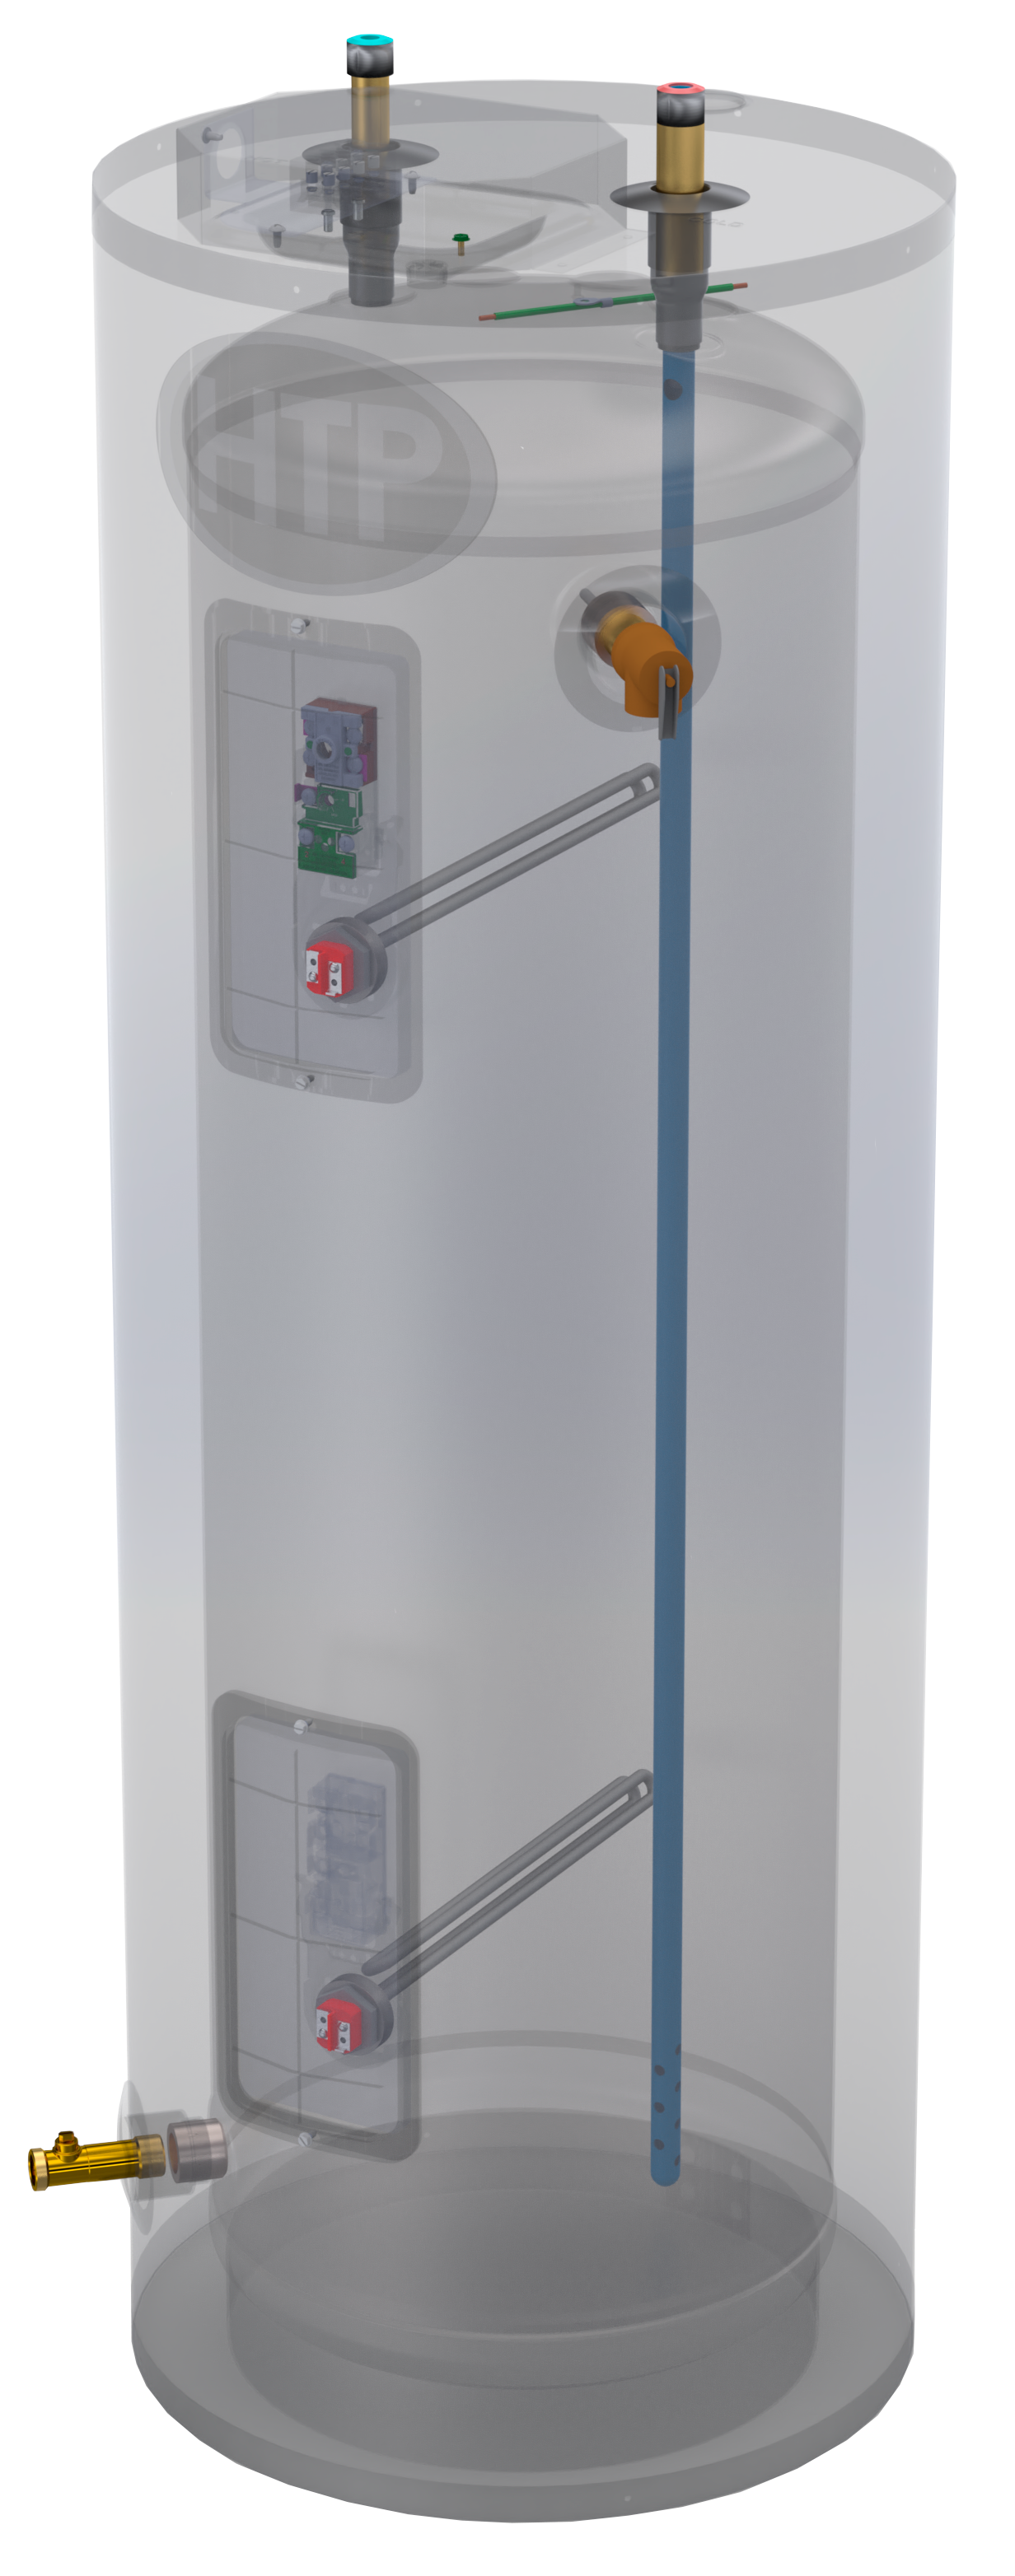 Htp Everlast Medium Duty Commercial Electric Water